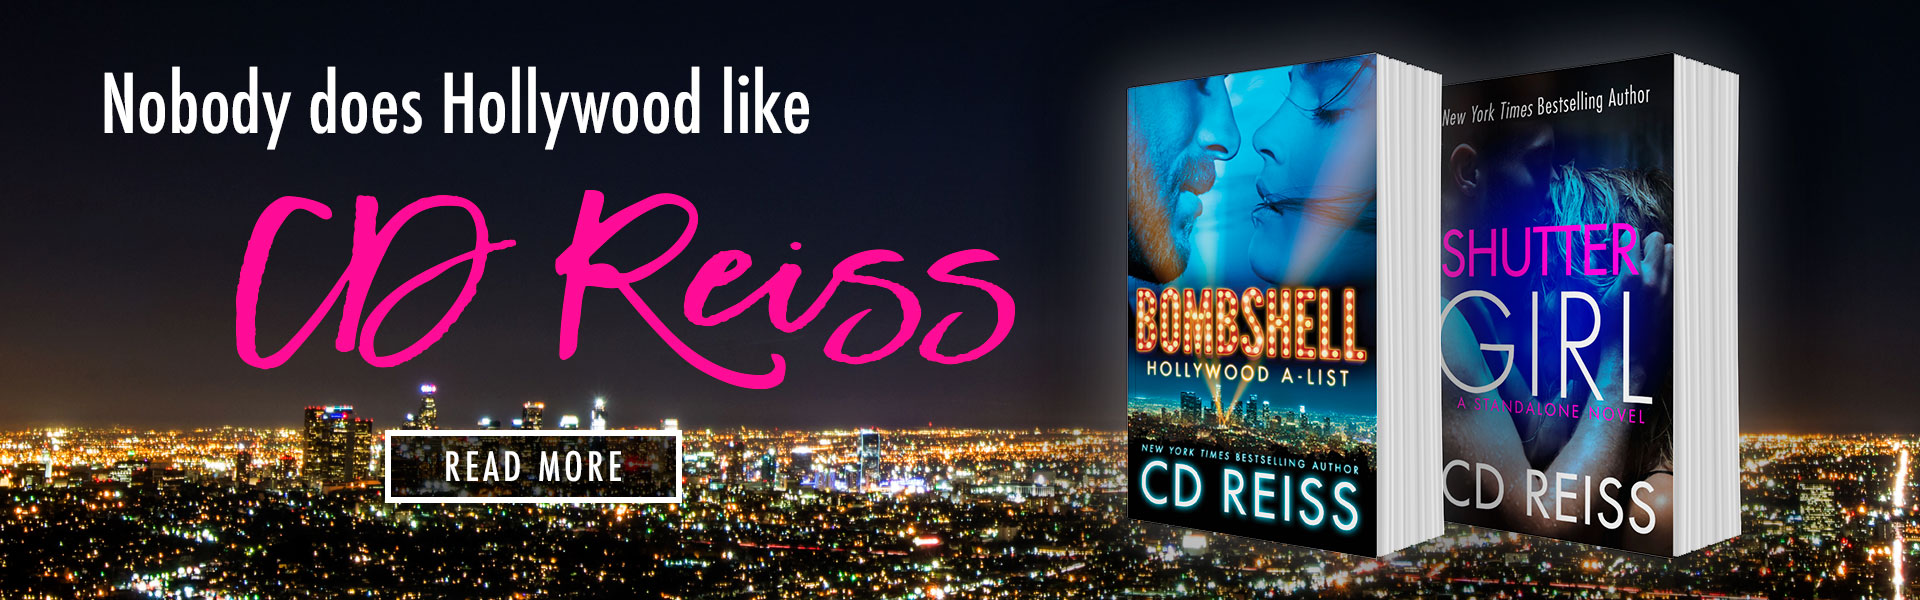 Bombshell and Shuttergirl - Nobody does Hollywood like New York Times Bestselling Erotica author CD Reiss